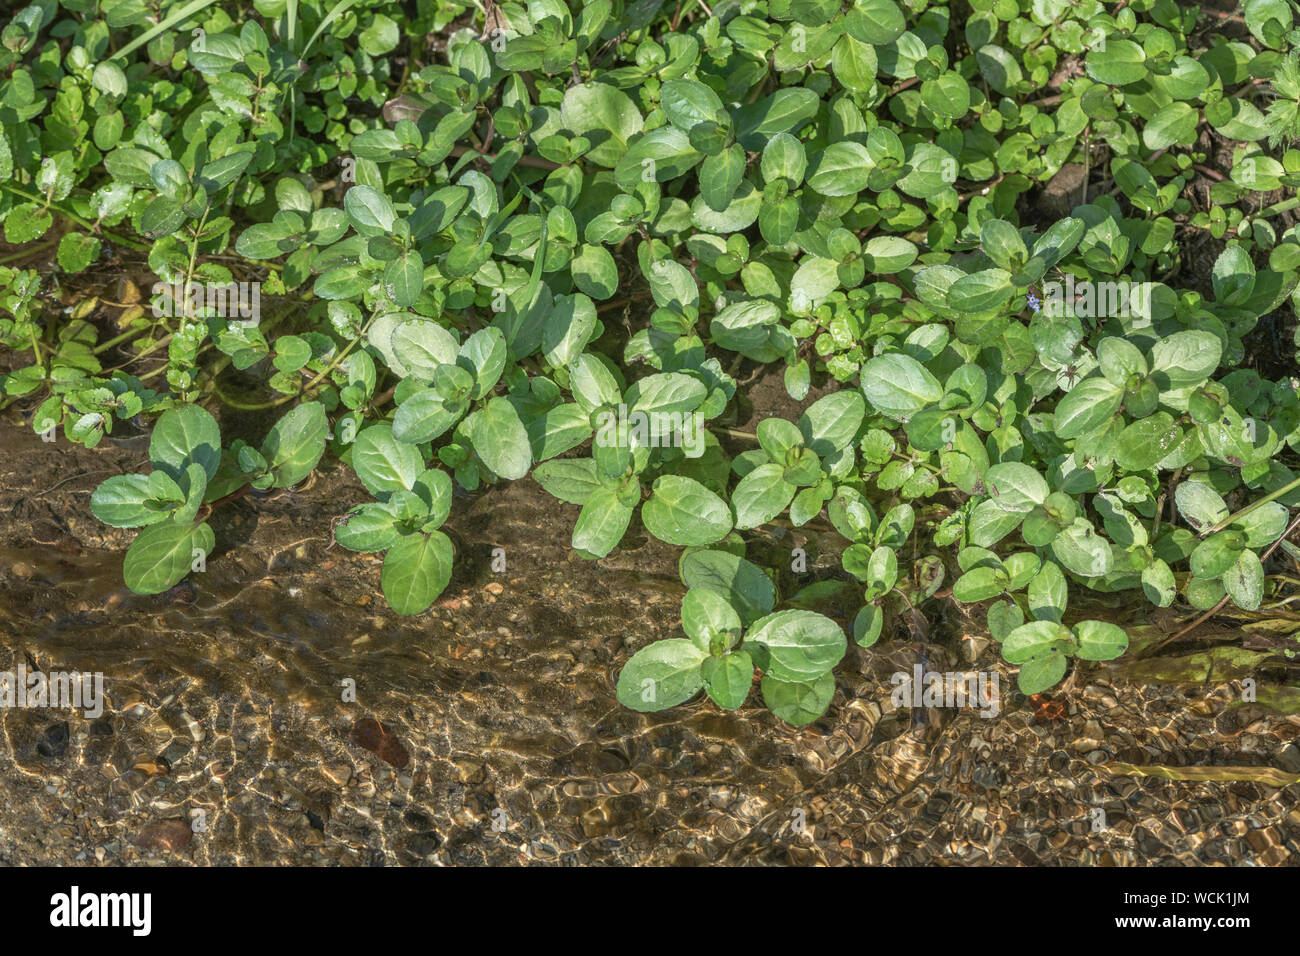 Brooklime / Veronica beccabunga foliage growing in a freshwater stream. Foraged and survival food containing Vitamin C. Once used in herbal remedies. Stock Photo